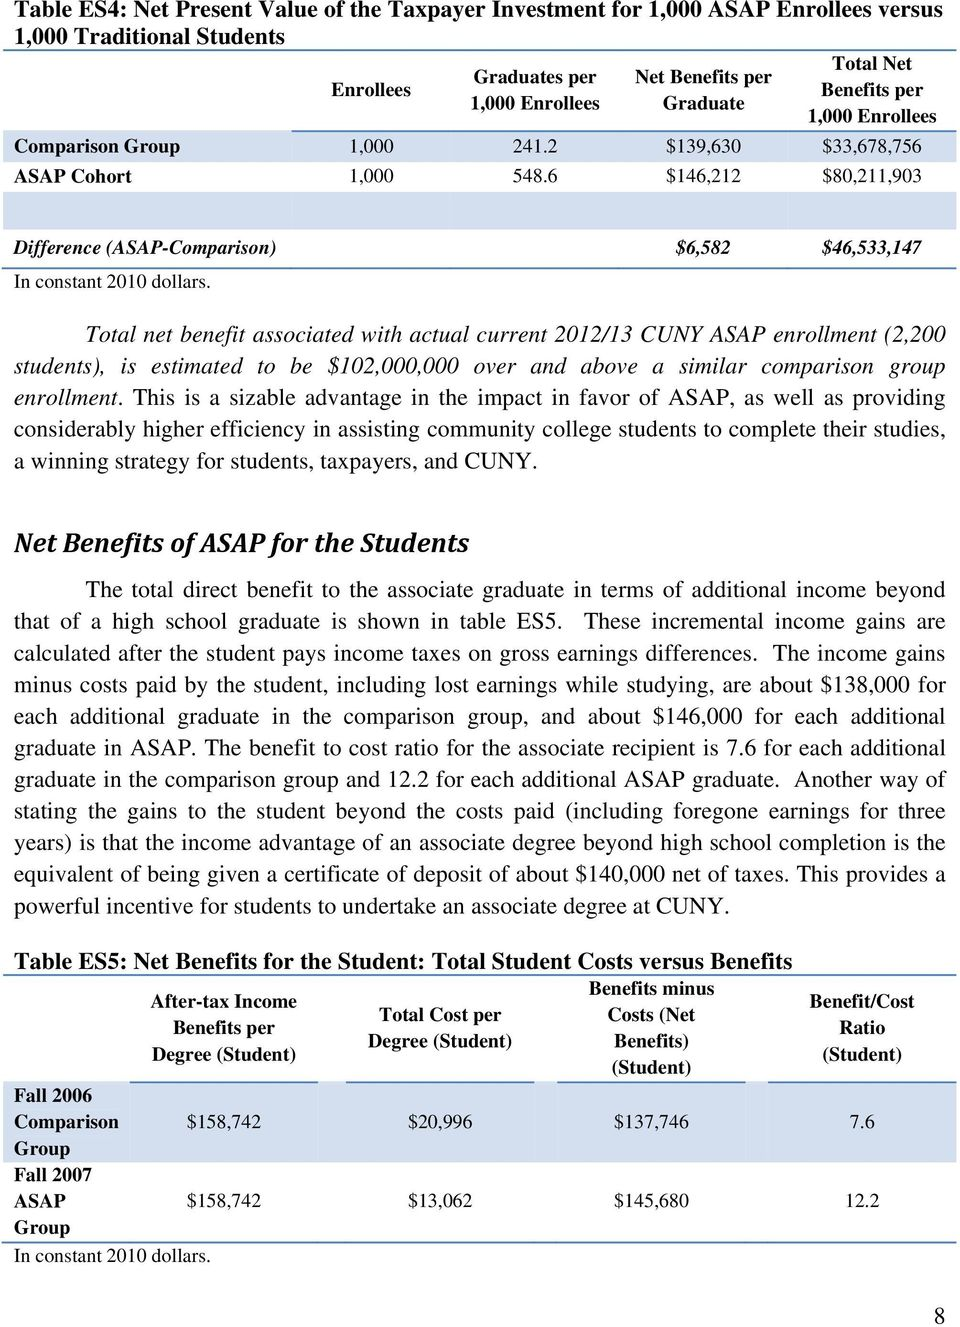 Total net benefit associated with actual current 2012/13 CUNY ASAP enrollment (2,200 students), is estimated to be $102,000,000 over and above a similar comparison group enrollment.